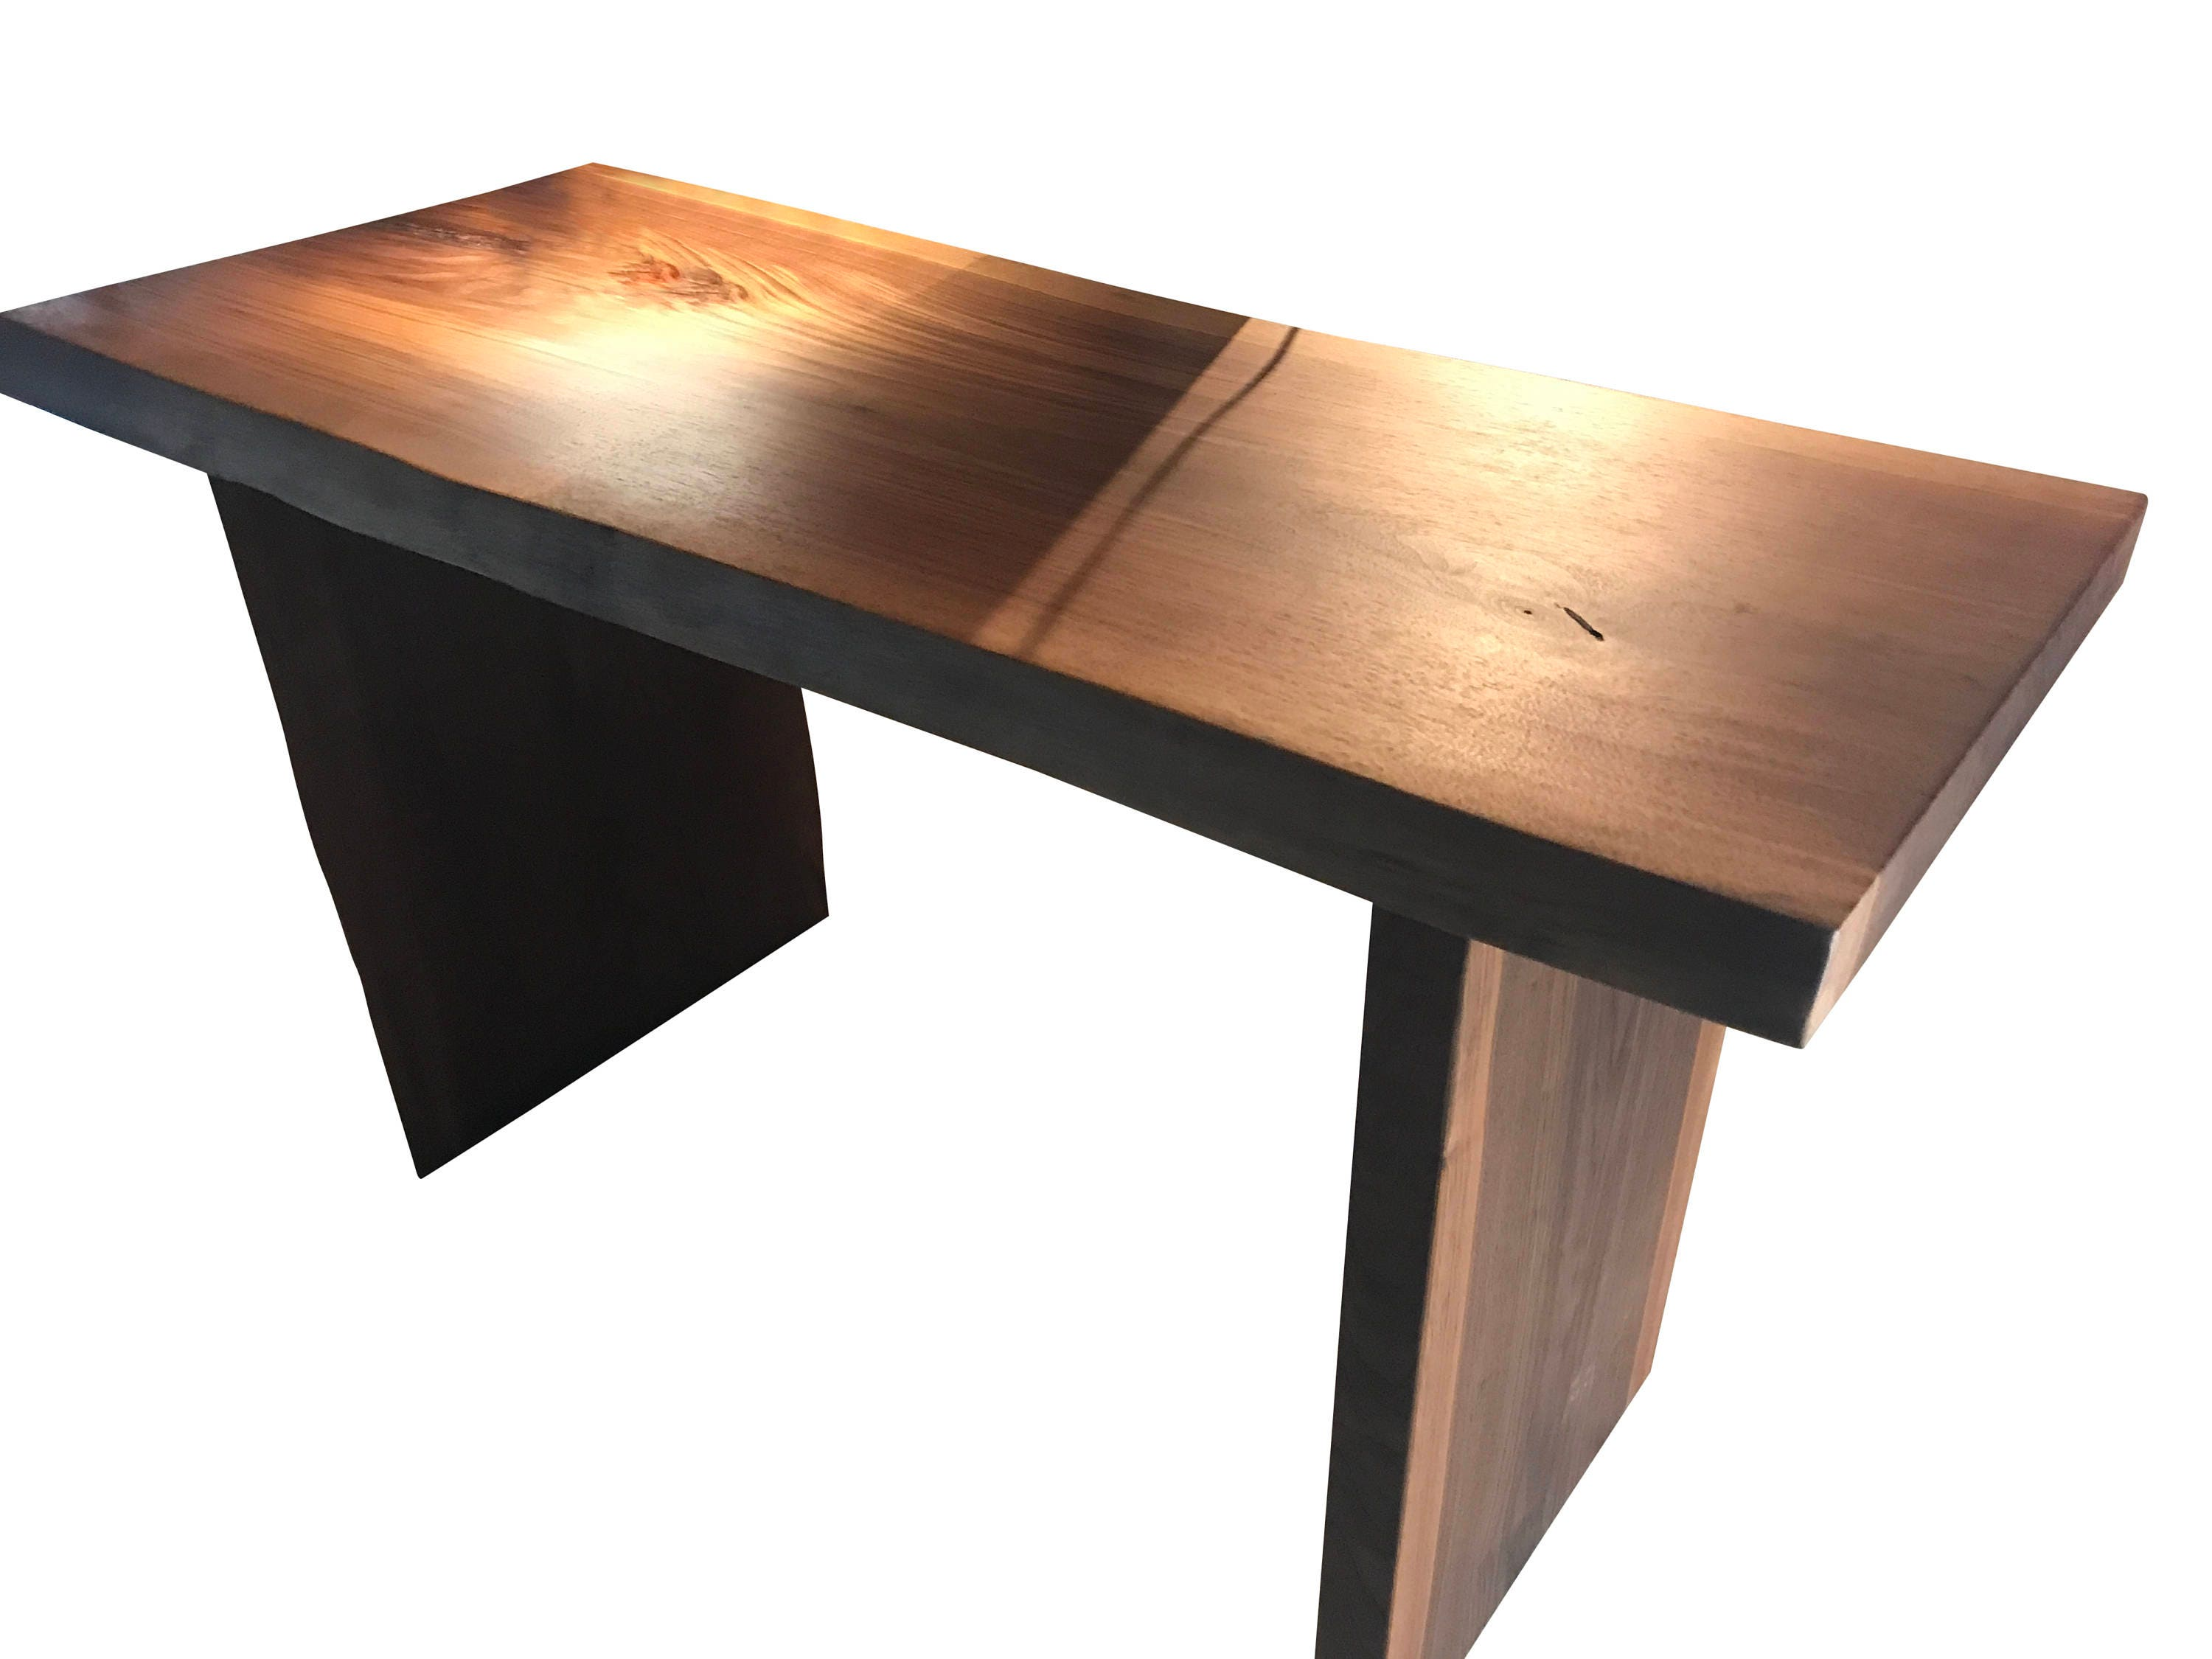 Live Edge Walnut desk, wood desk table, home office desk, walnut table,